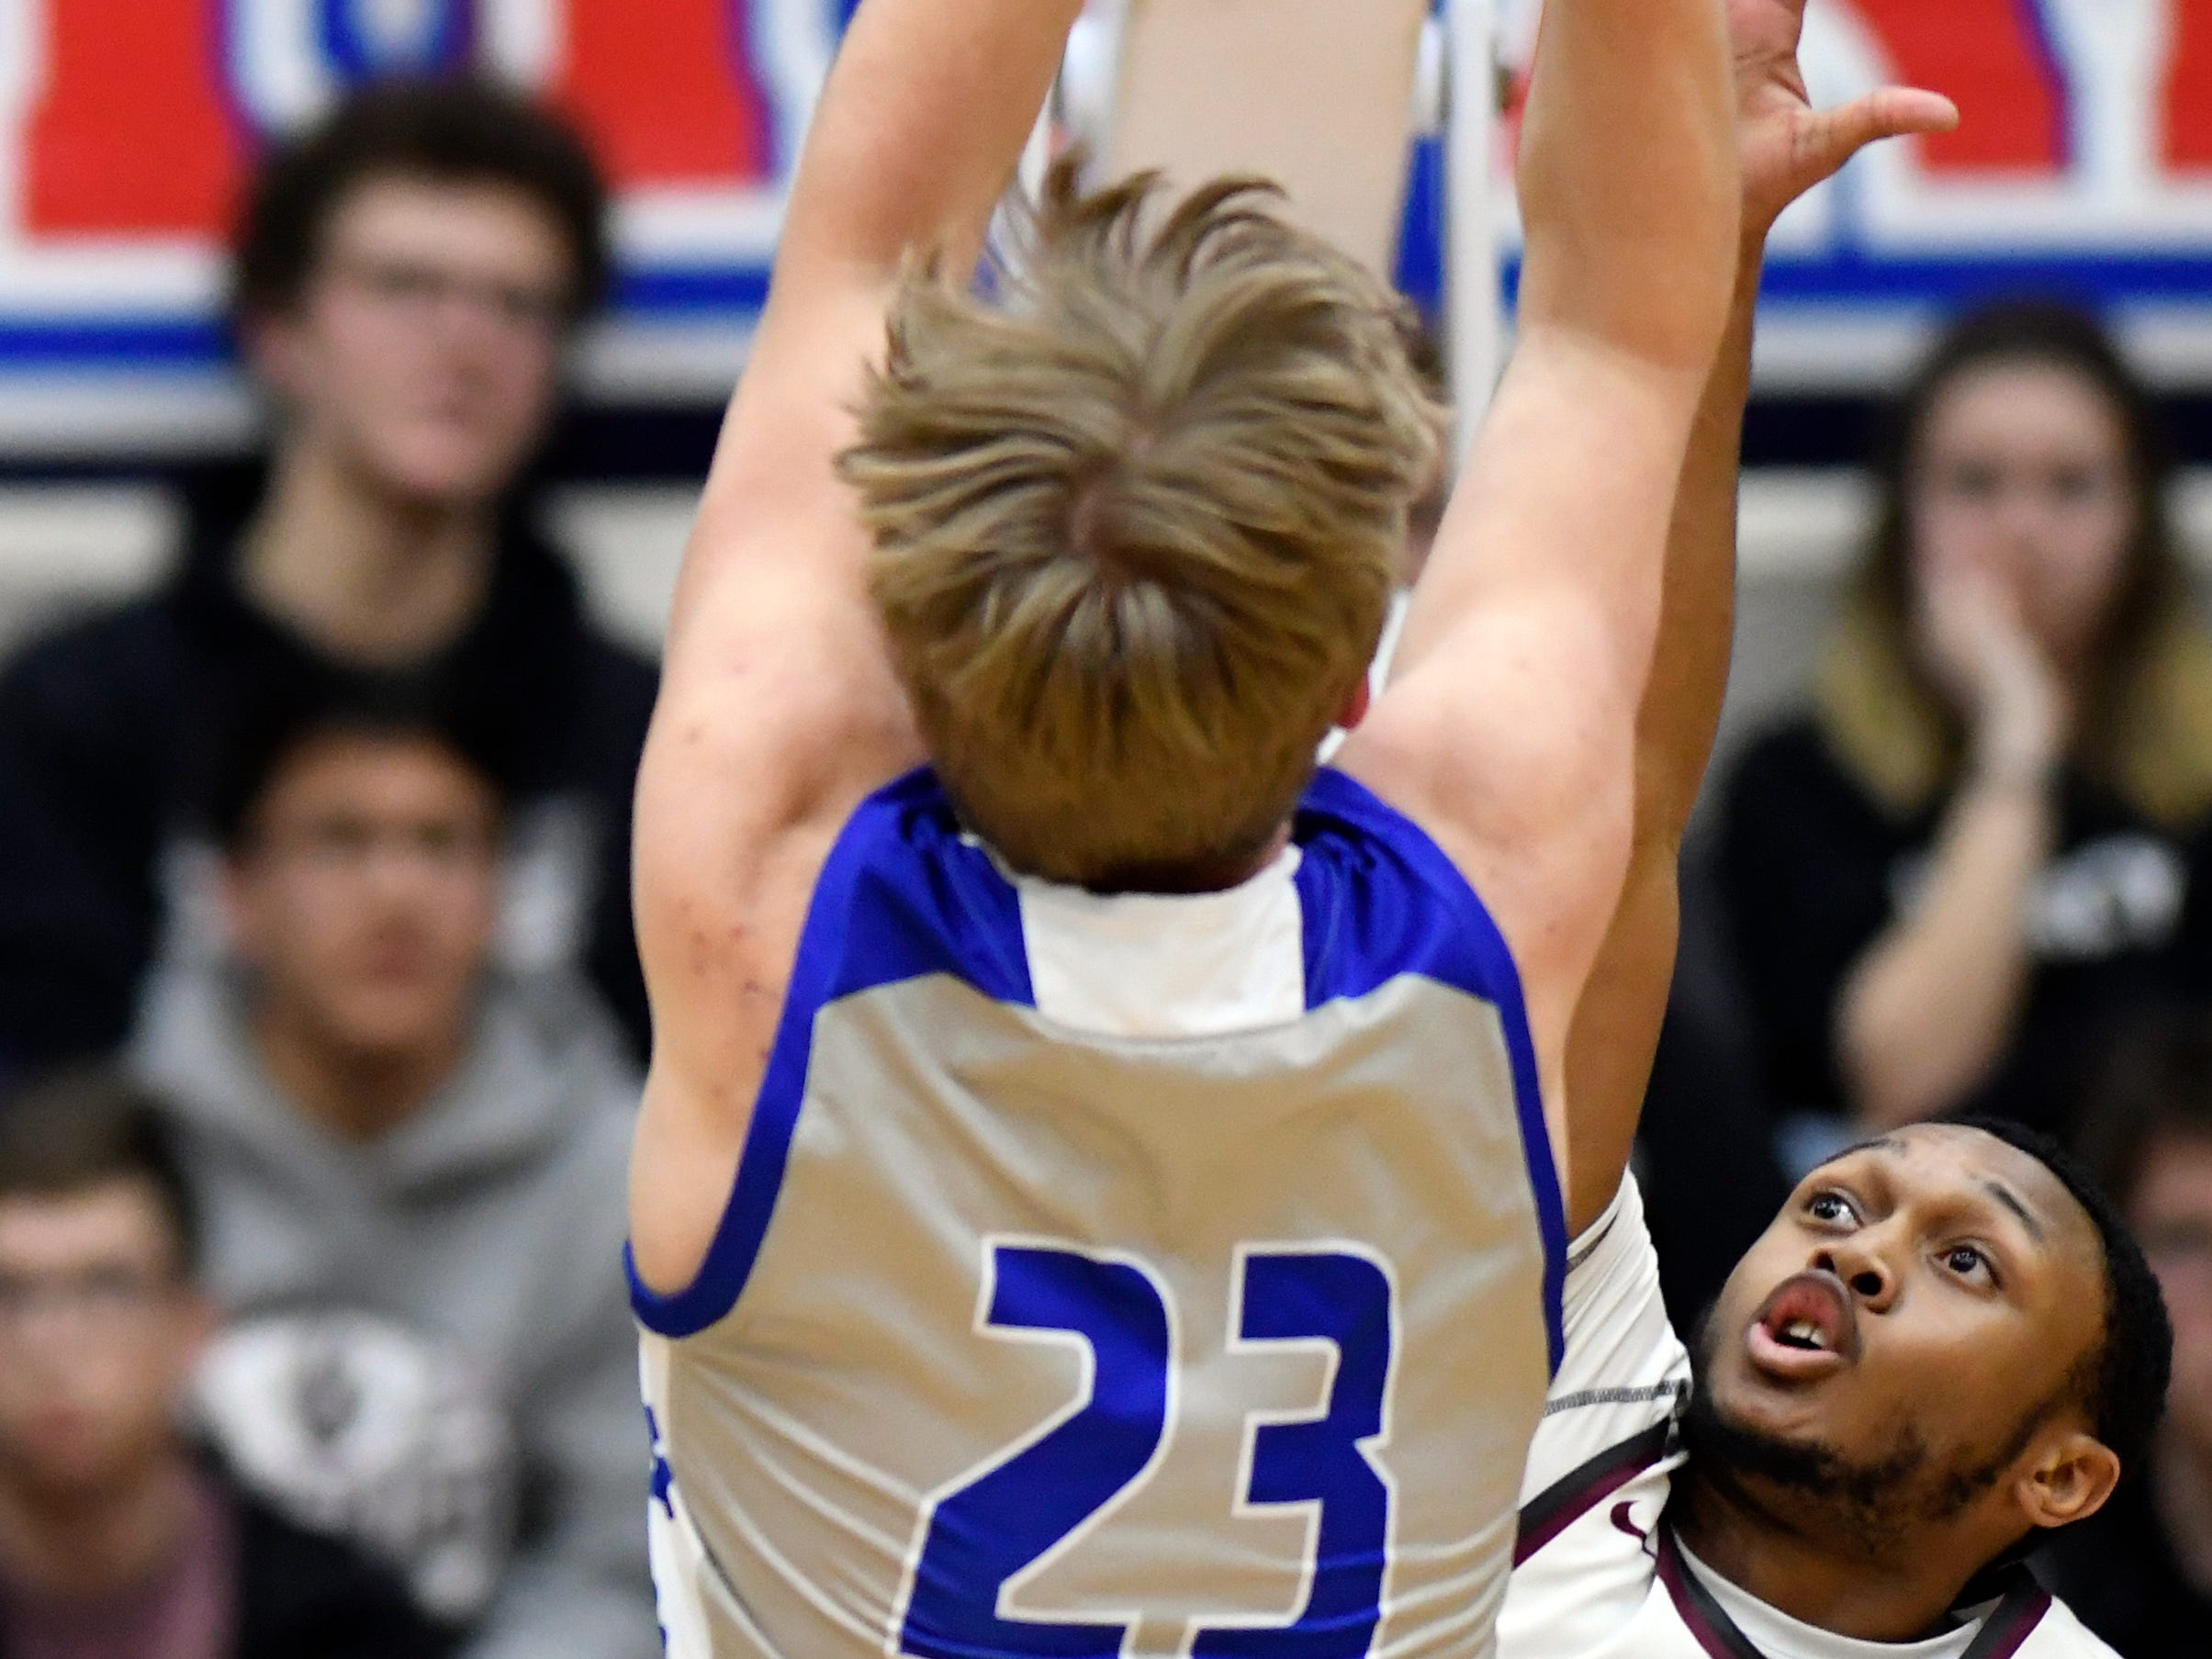 Detroit Catholic Central's Jacob Woebkenberg (23) goes up for a shot over U. of D Jesuit guard Jordan Montgomery (3) during the first quarter.